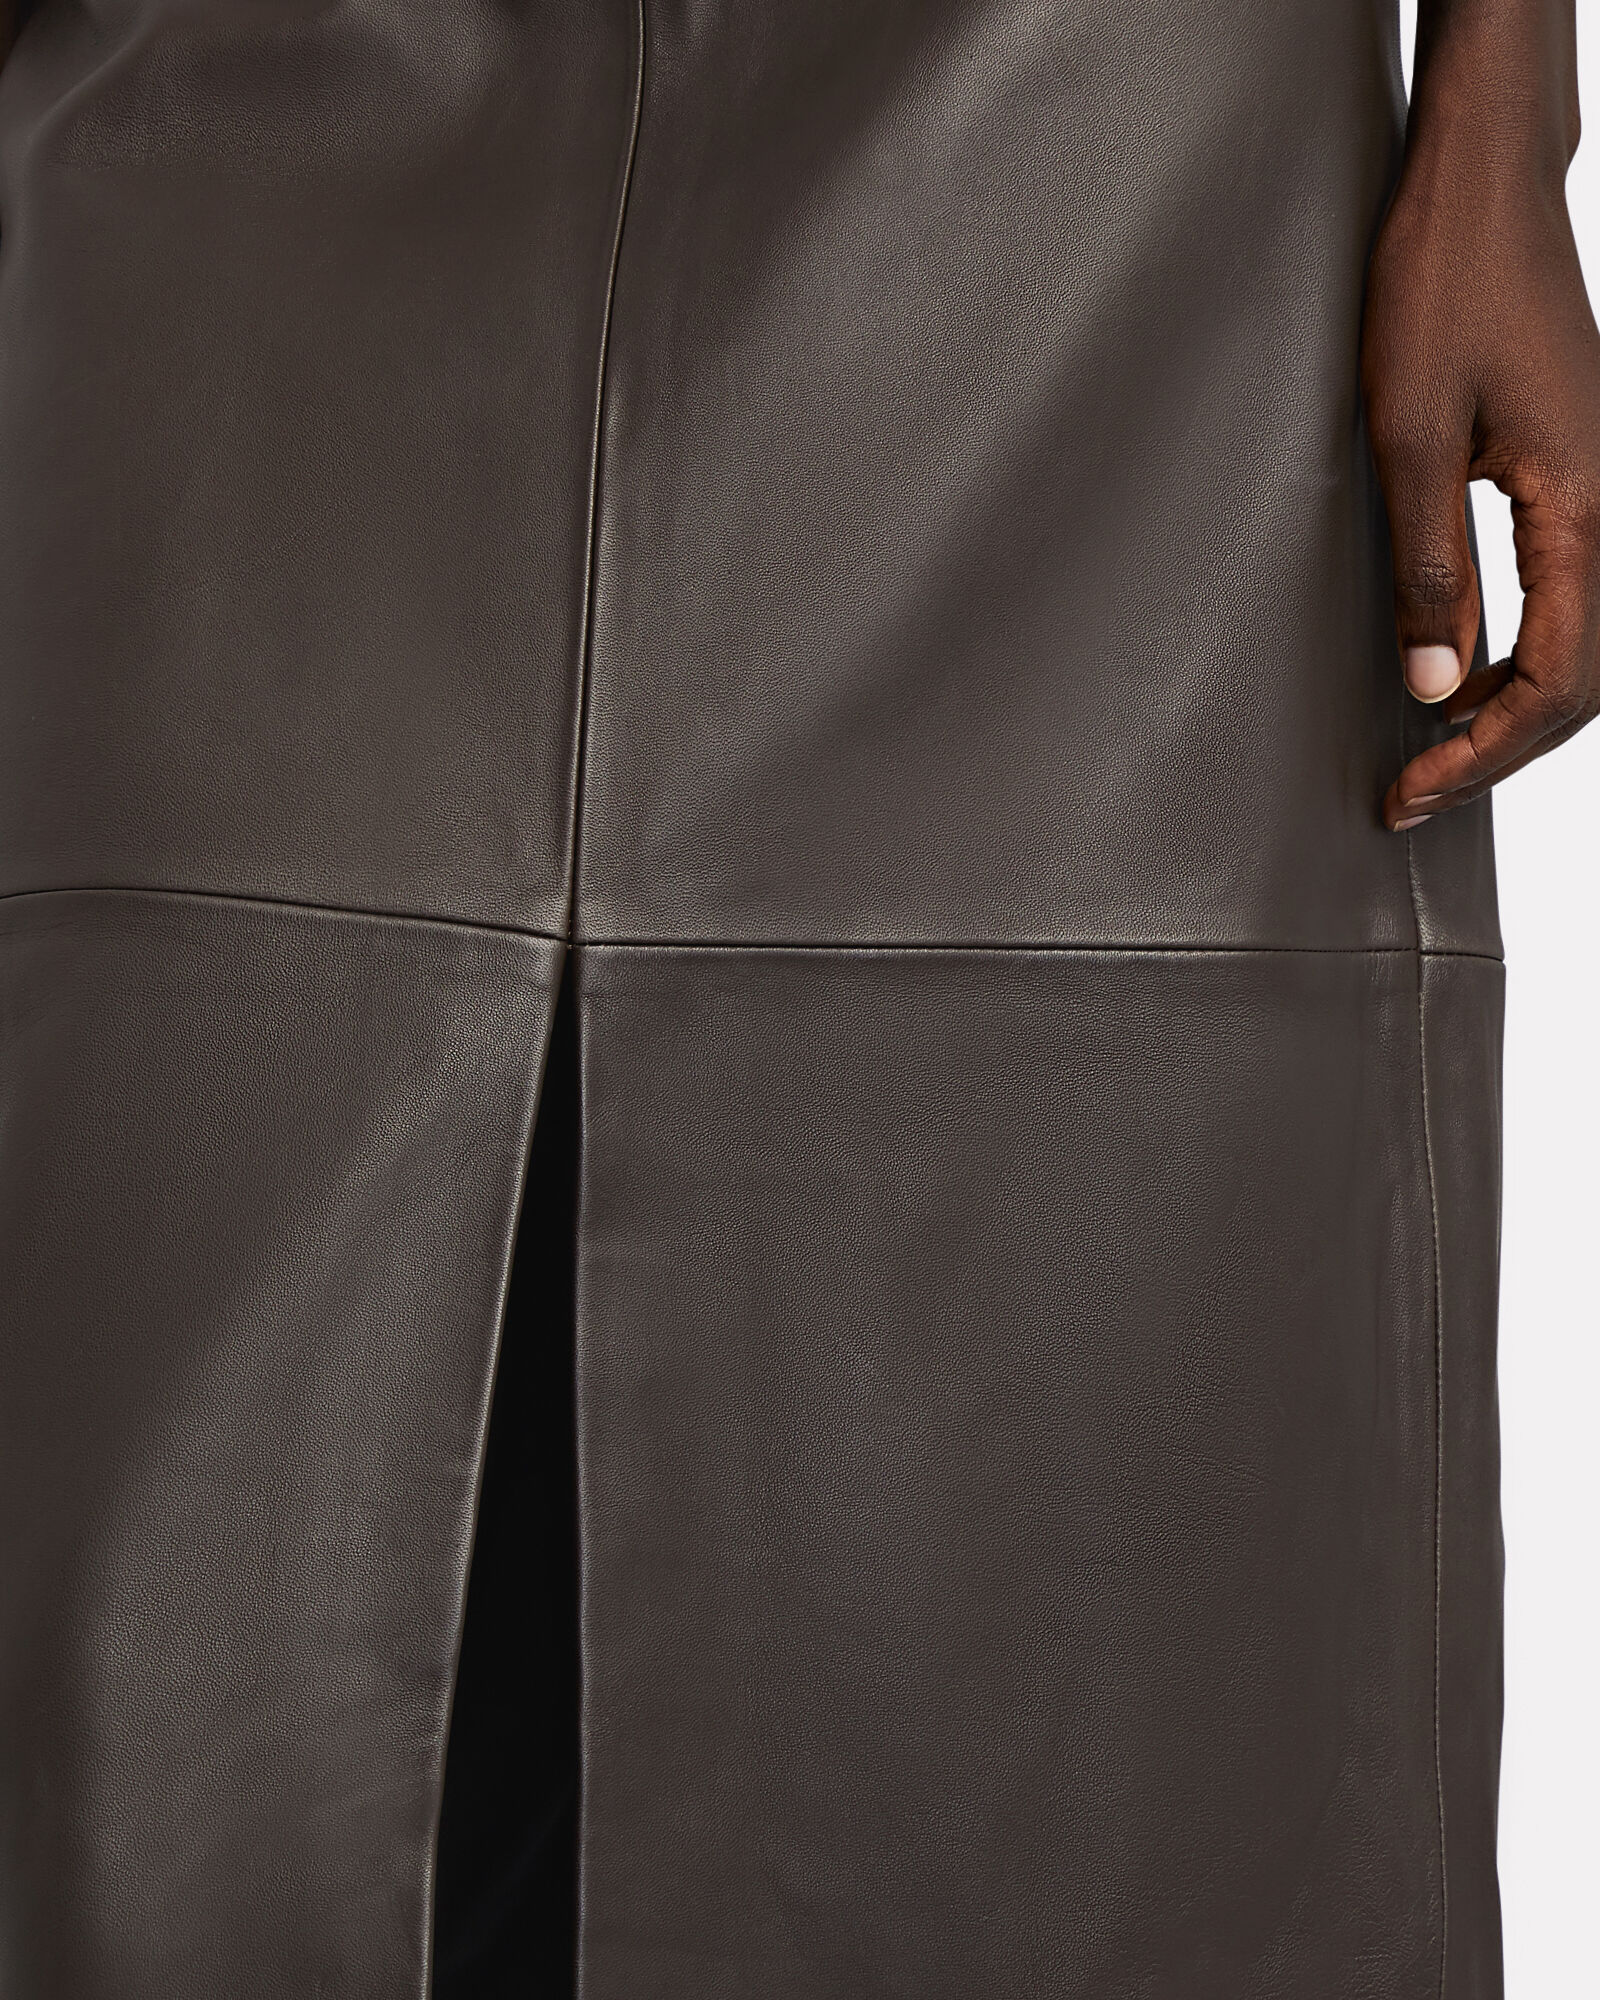 Moss Vegan Leather Skirt, BROWN, hi-res